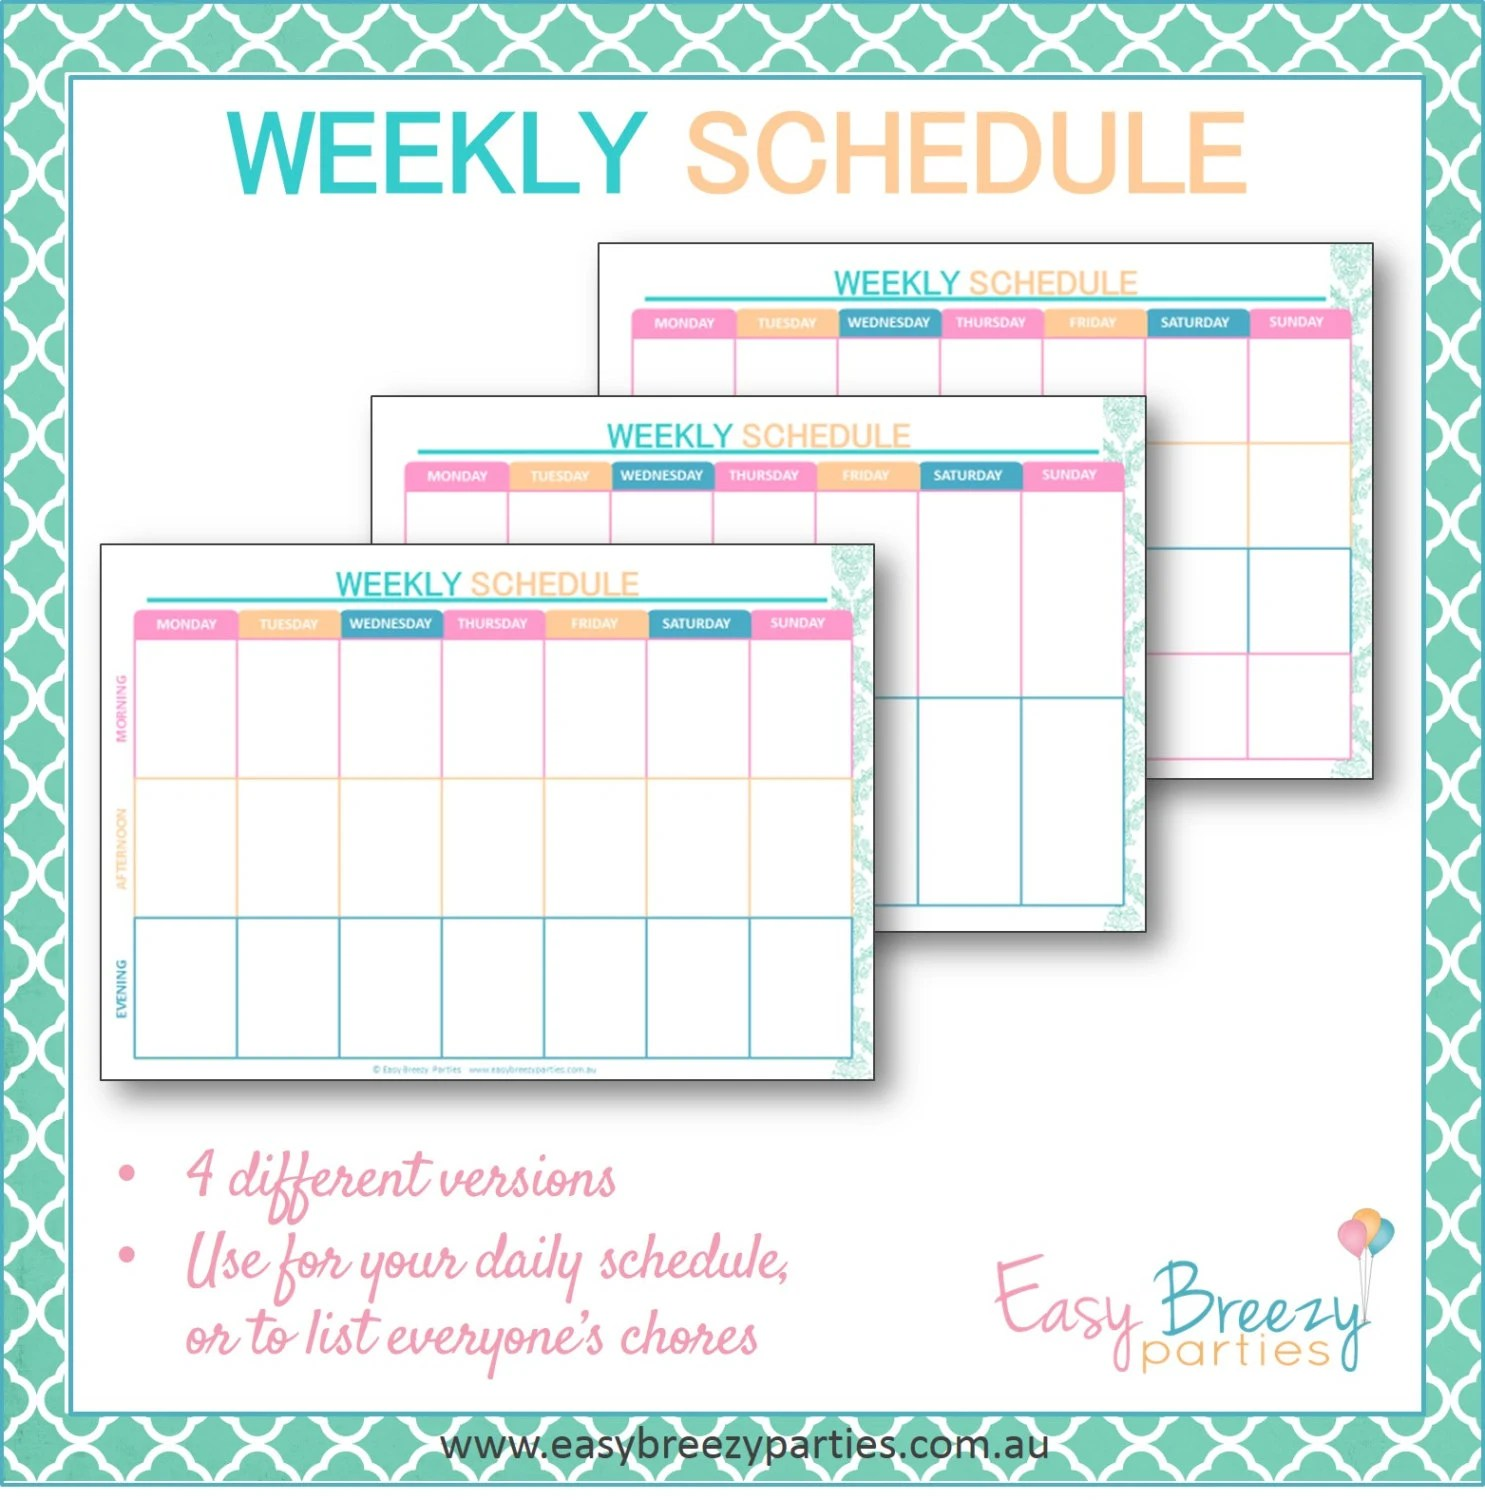 Weekly Schedule Printable - Weekly timetable, planner - Family chore - weekly schedule charts